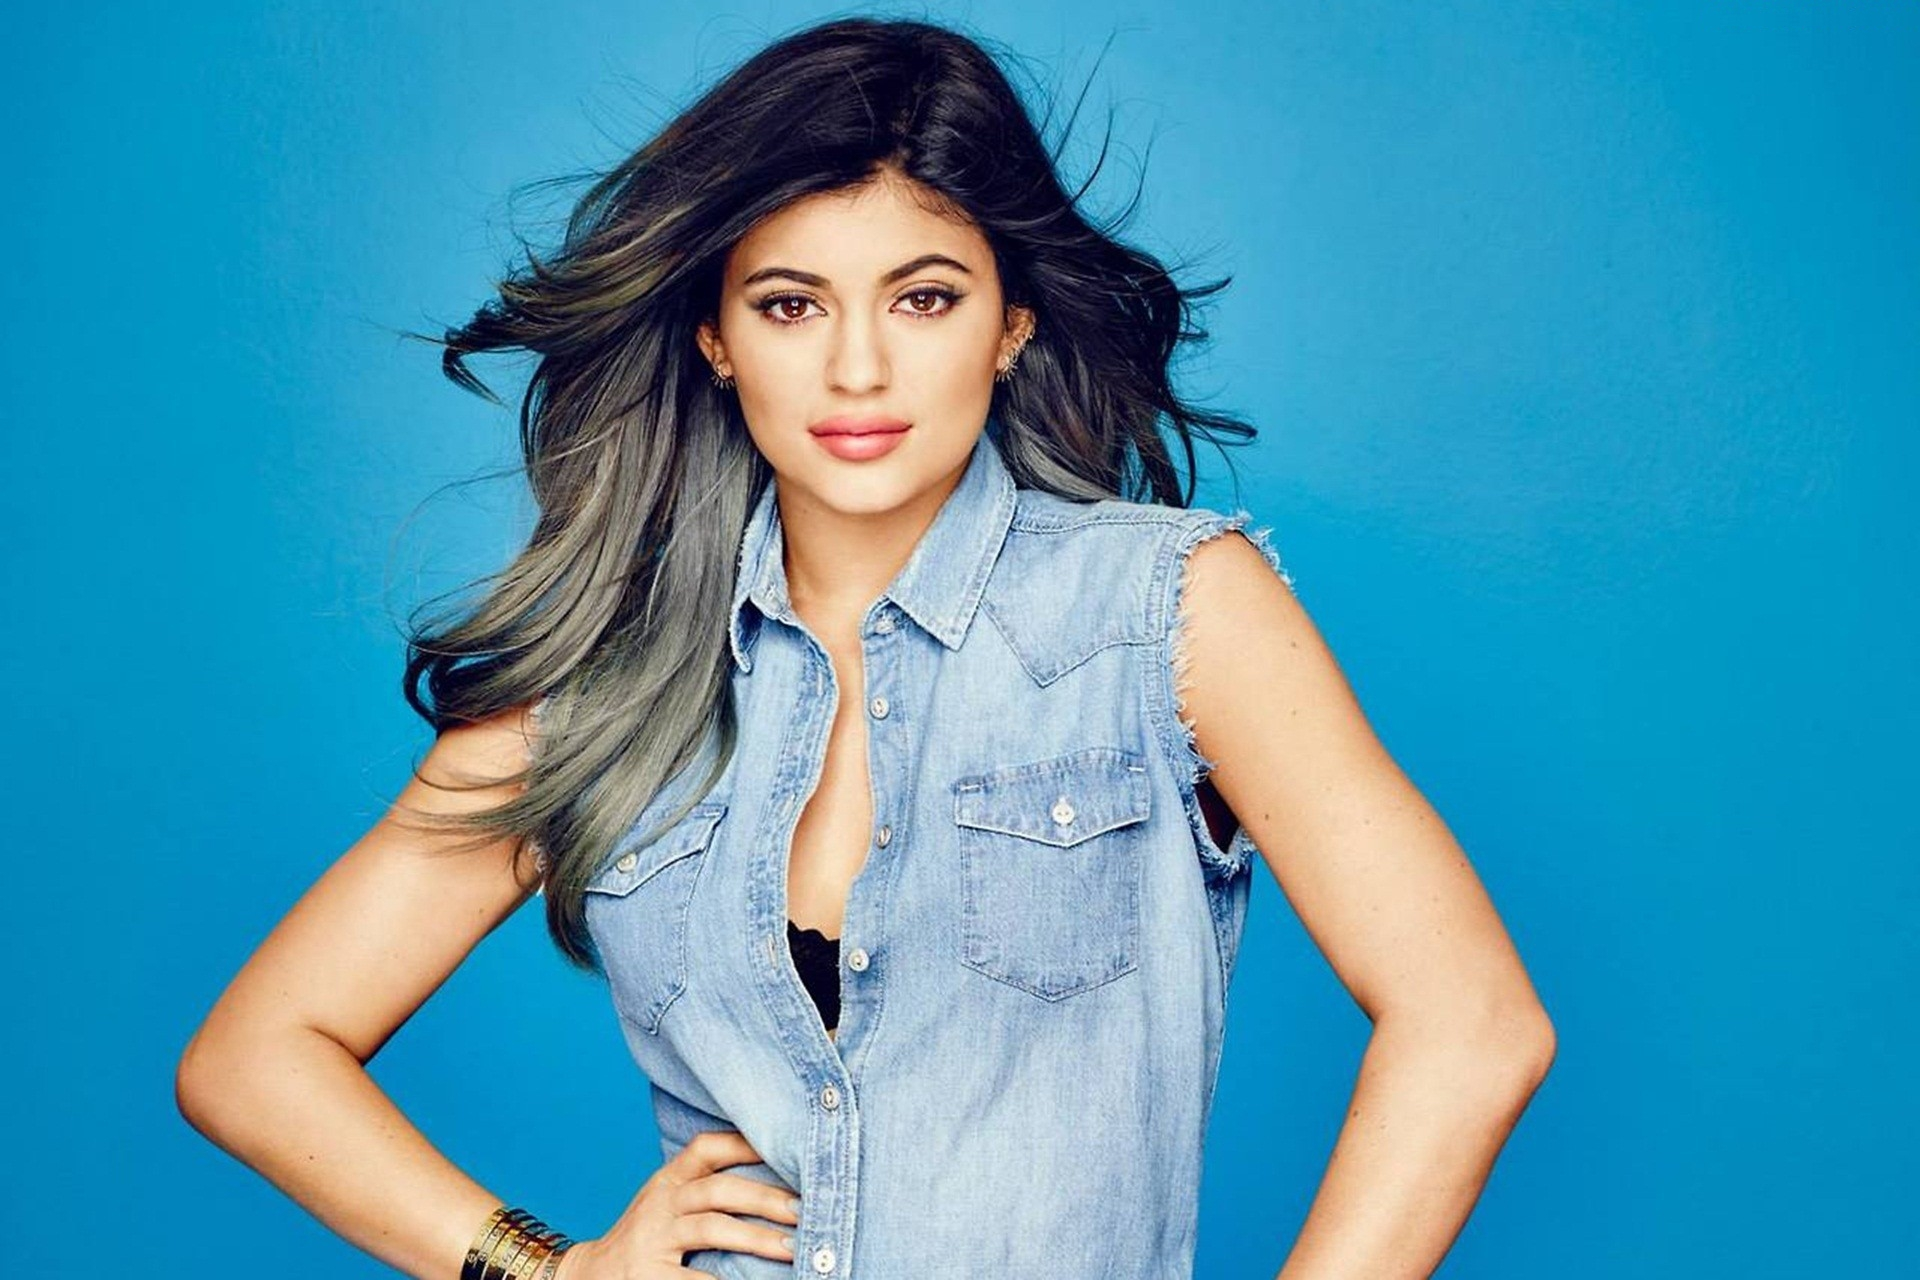 kylie jenner desktop wallpaper 62067